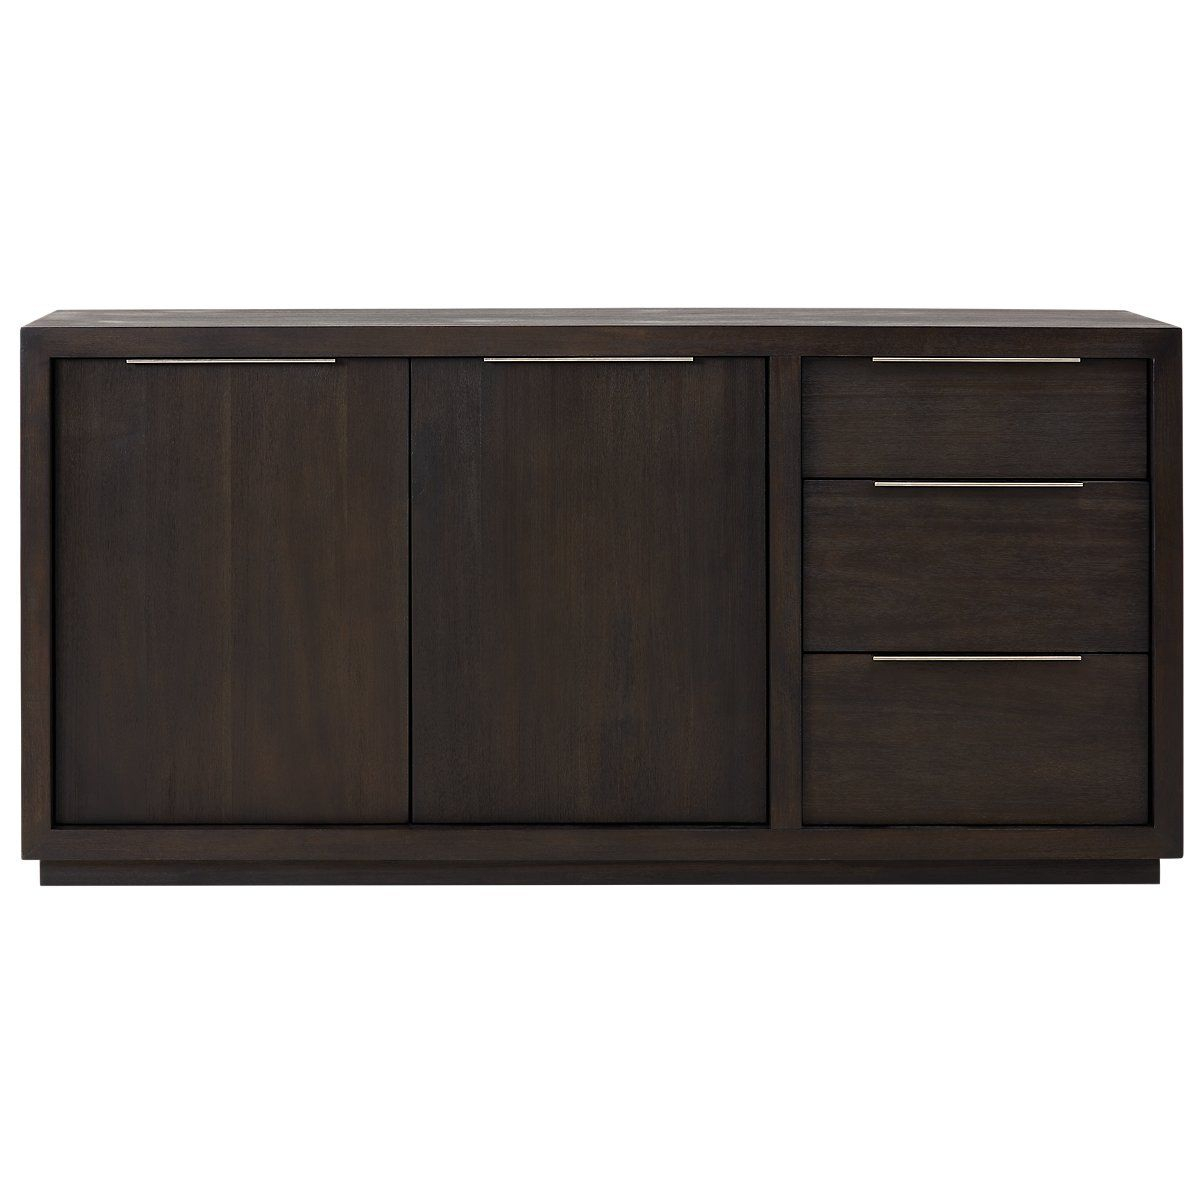 Candide Dark Gray Wood Credenza | Dining Room | Grey Wood intended for Candide Wood Credenzas (Image 8 of 30)